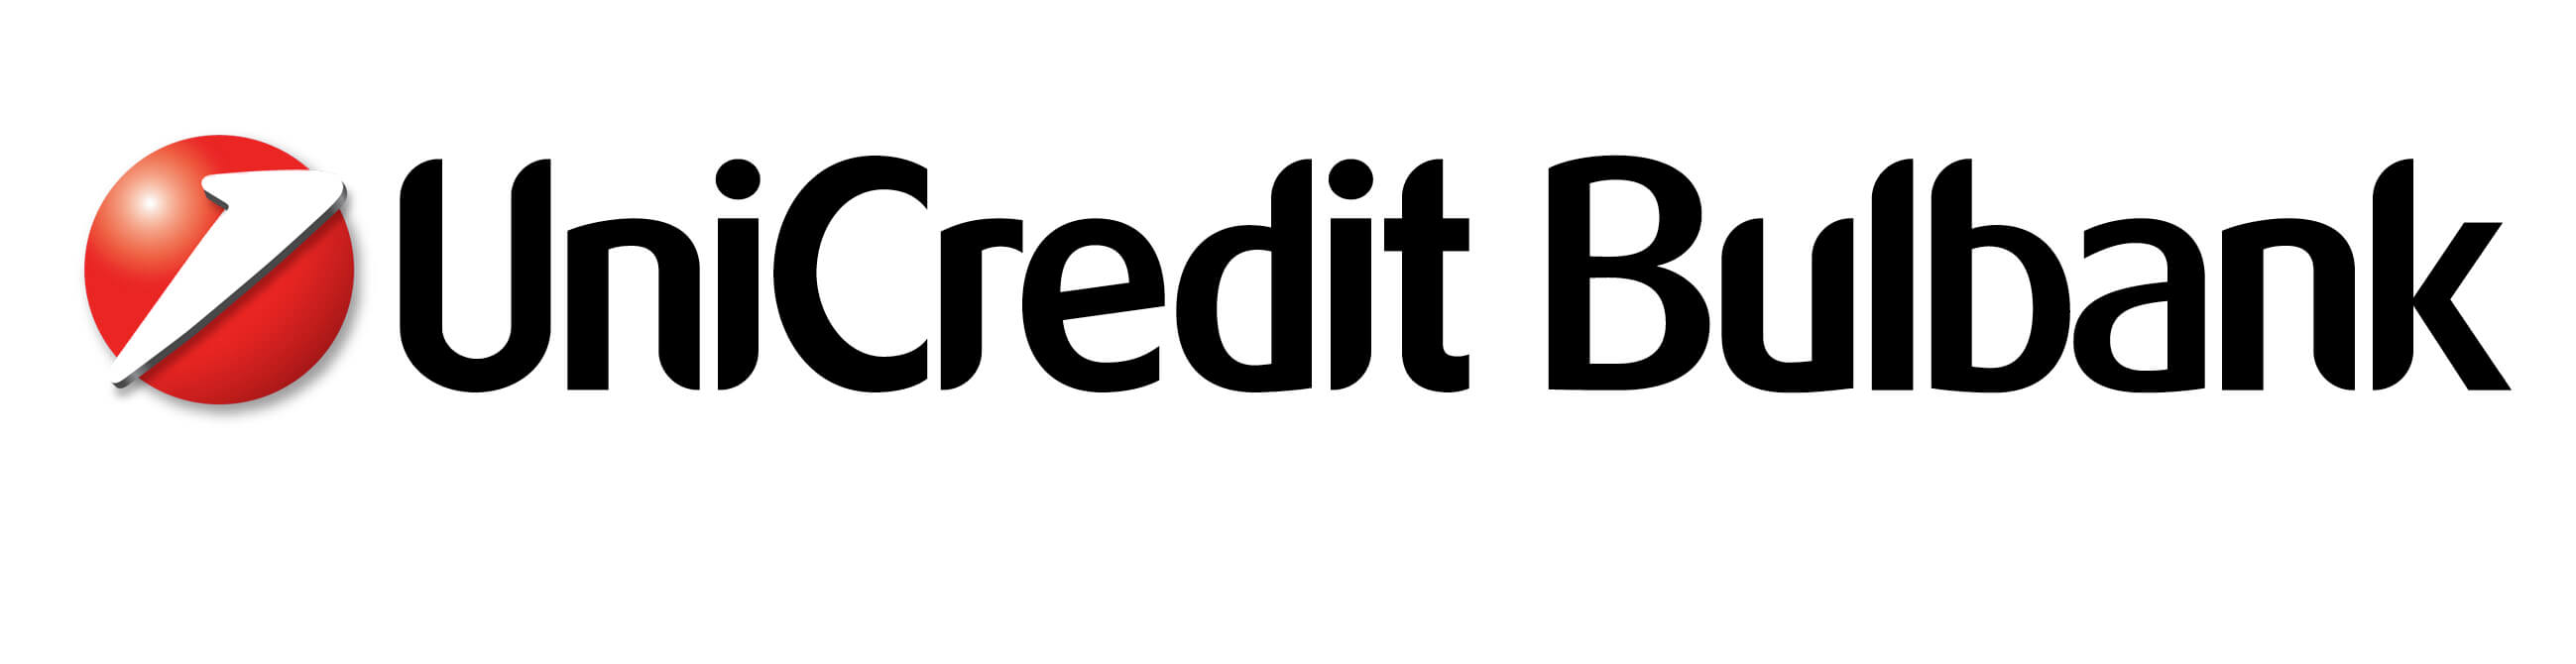 unicredit_logo